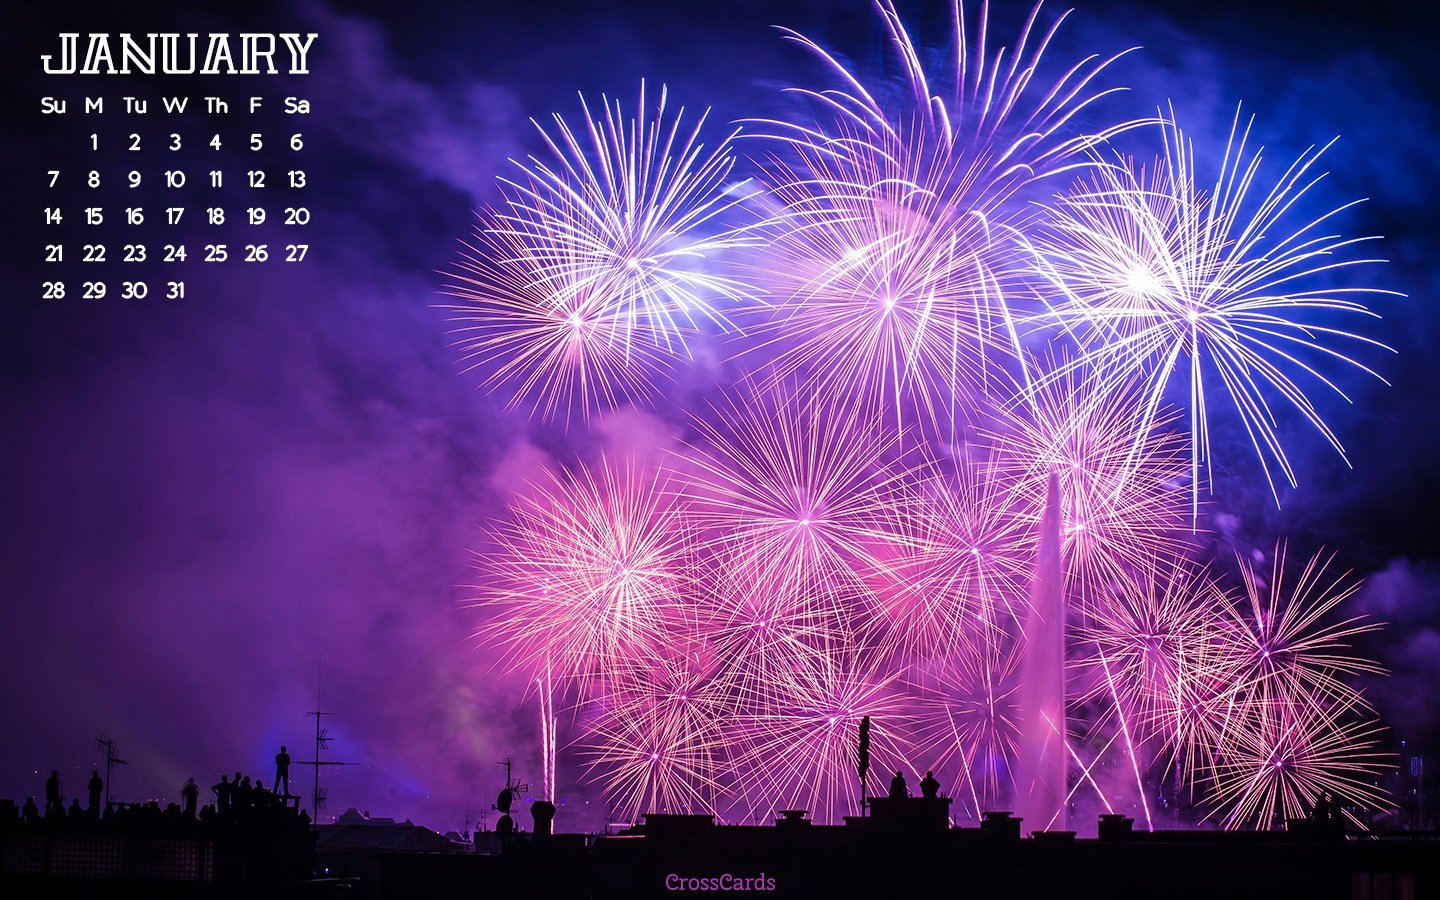 January 2018 - Fireworks Desktop Calendar- Free January Download Crosscards Monthly Calendar For Computer Background